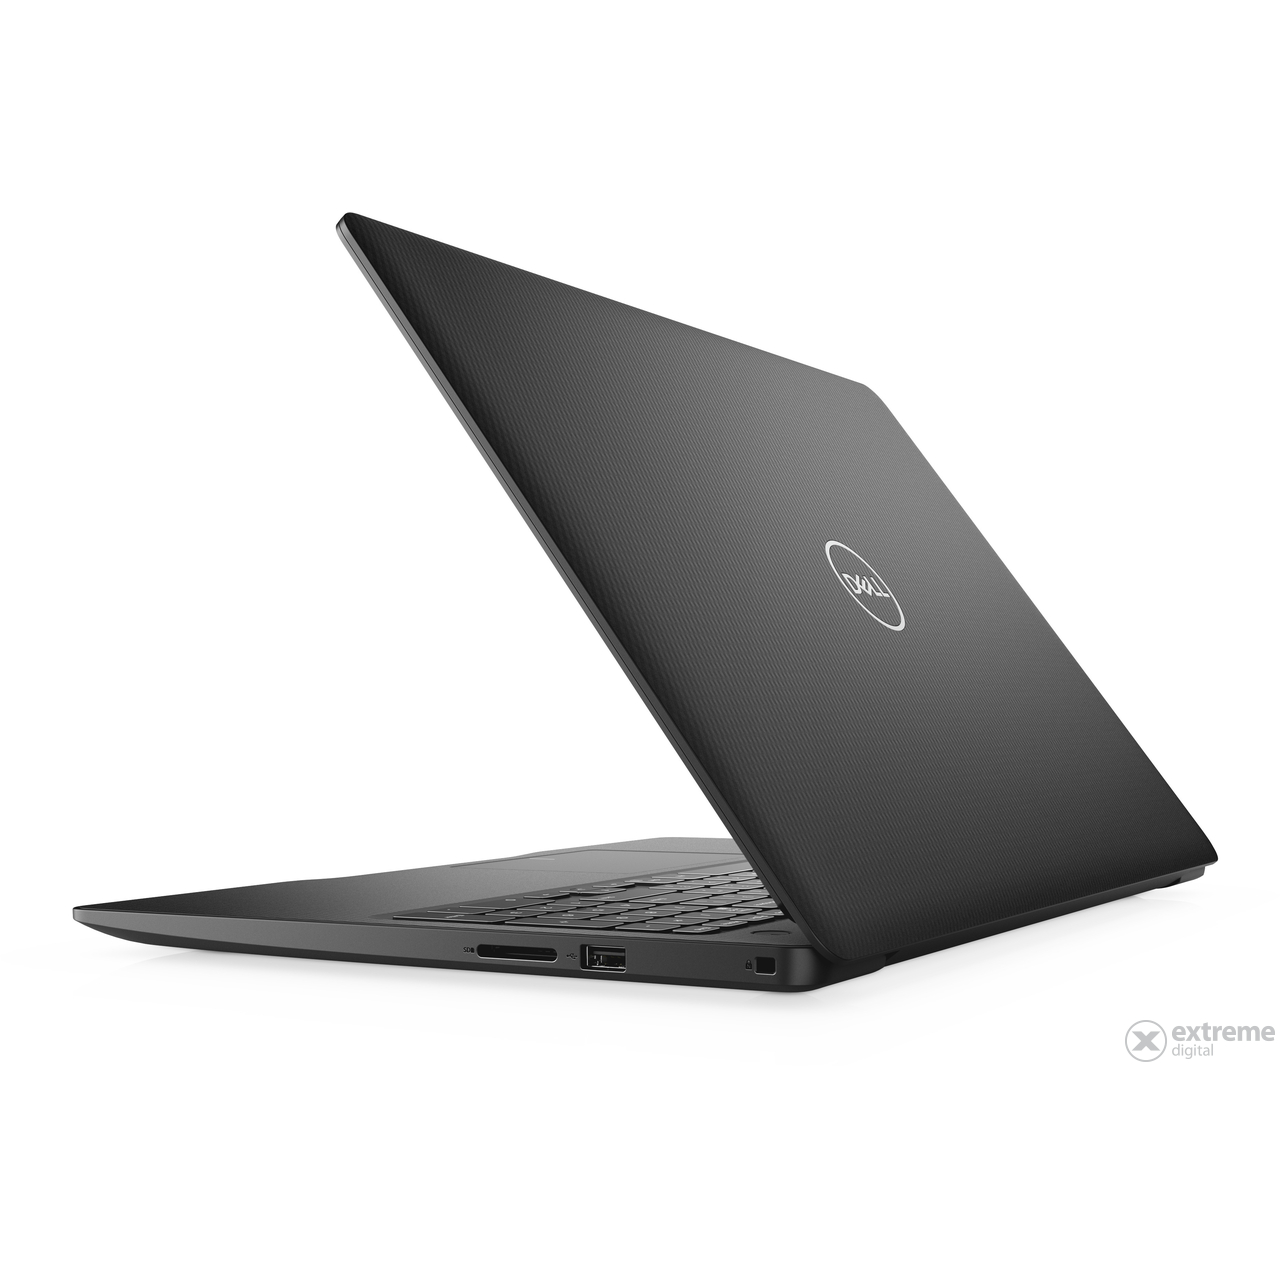 Notebook Dell Inspiron 3584 3584FI3WA1, negru + Windows 10 Home ( tastatura layout HU)